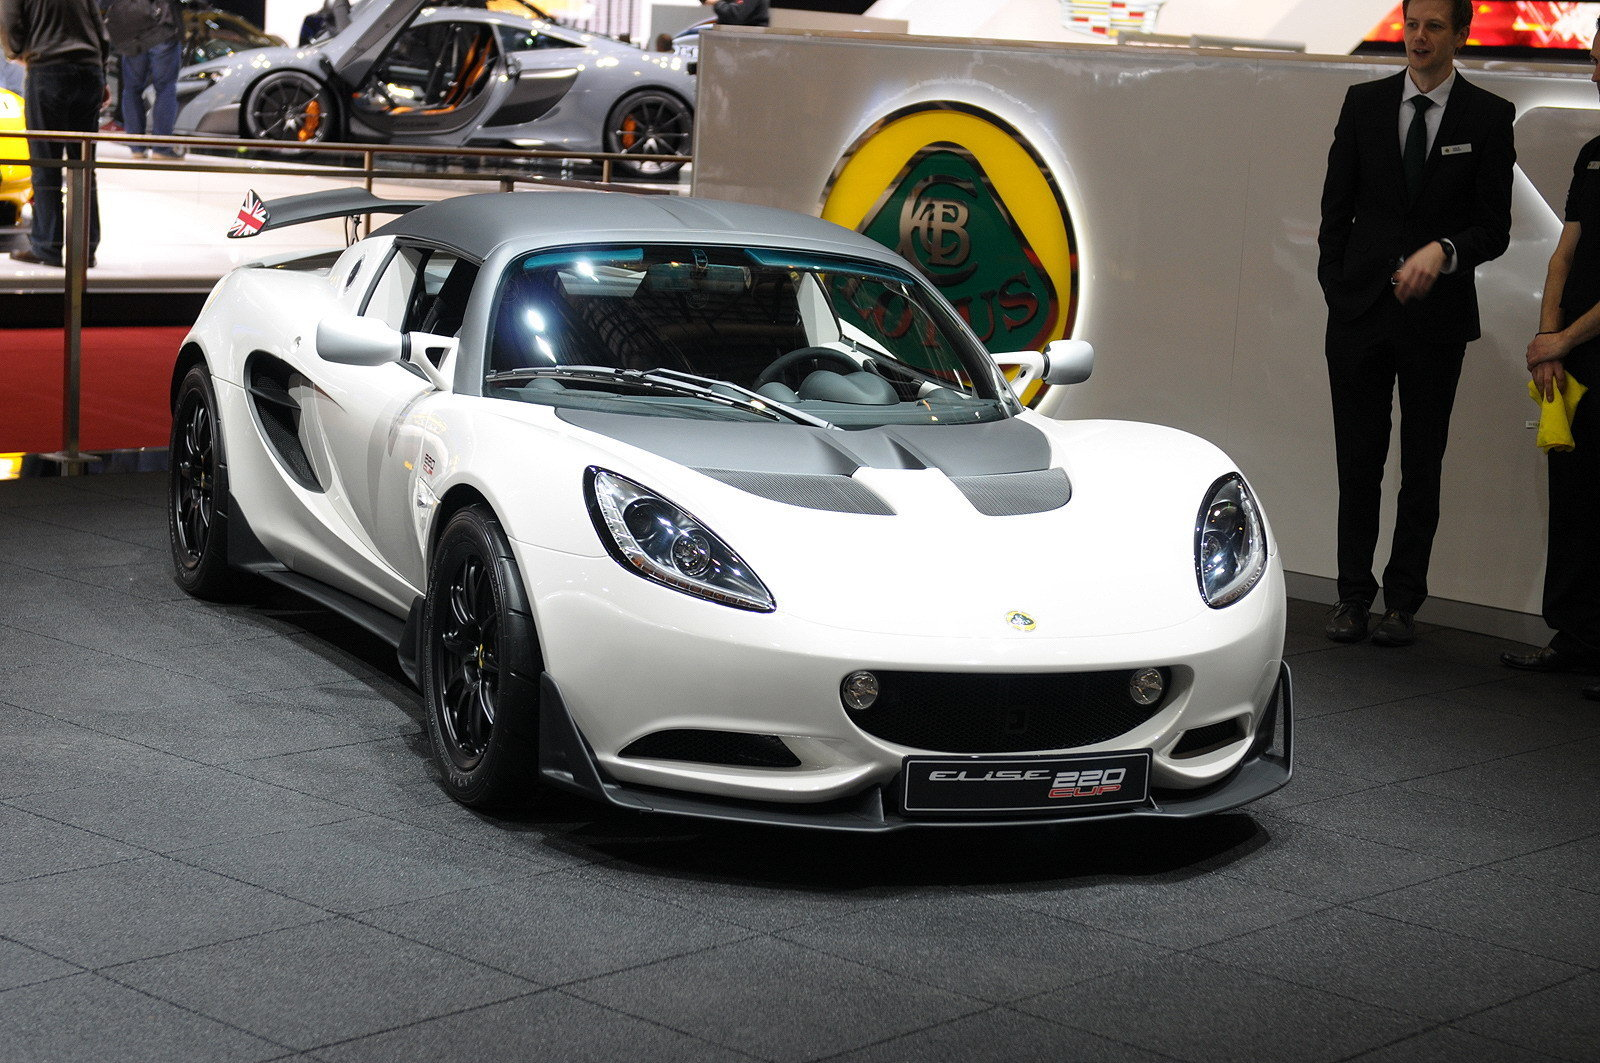 2015 lotus elise s cup picture 622468 car review top speed. Black Bedroom Furniture Sets. Home Design Ideas